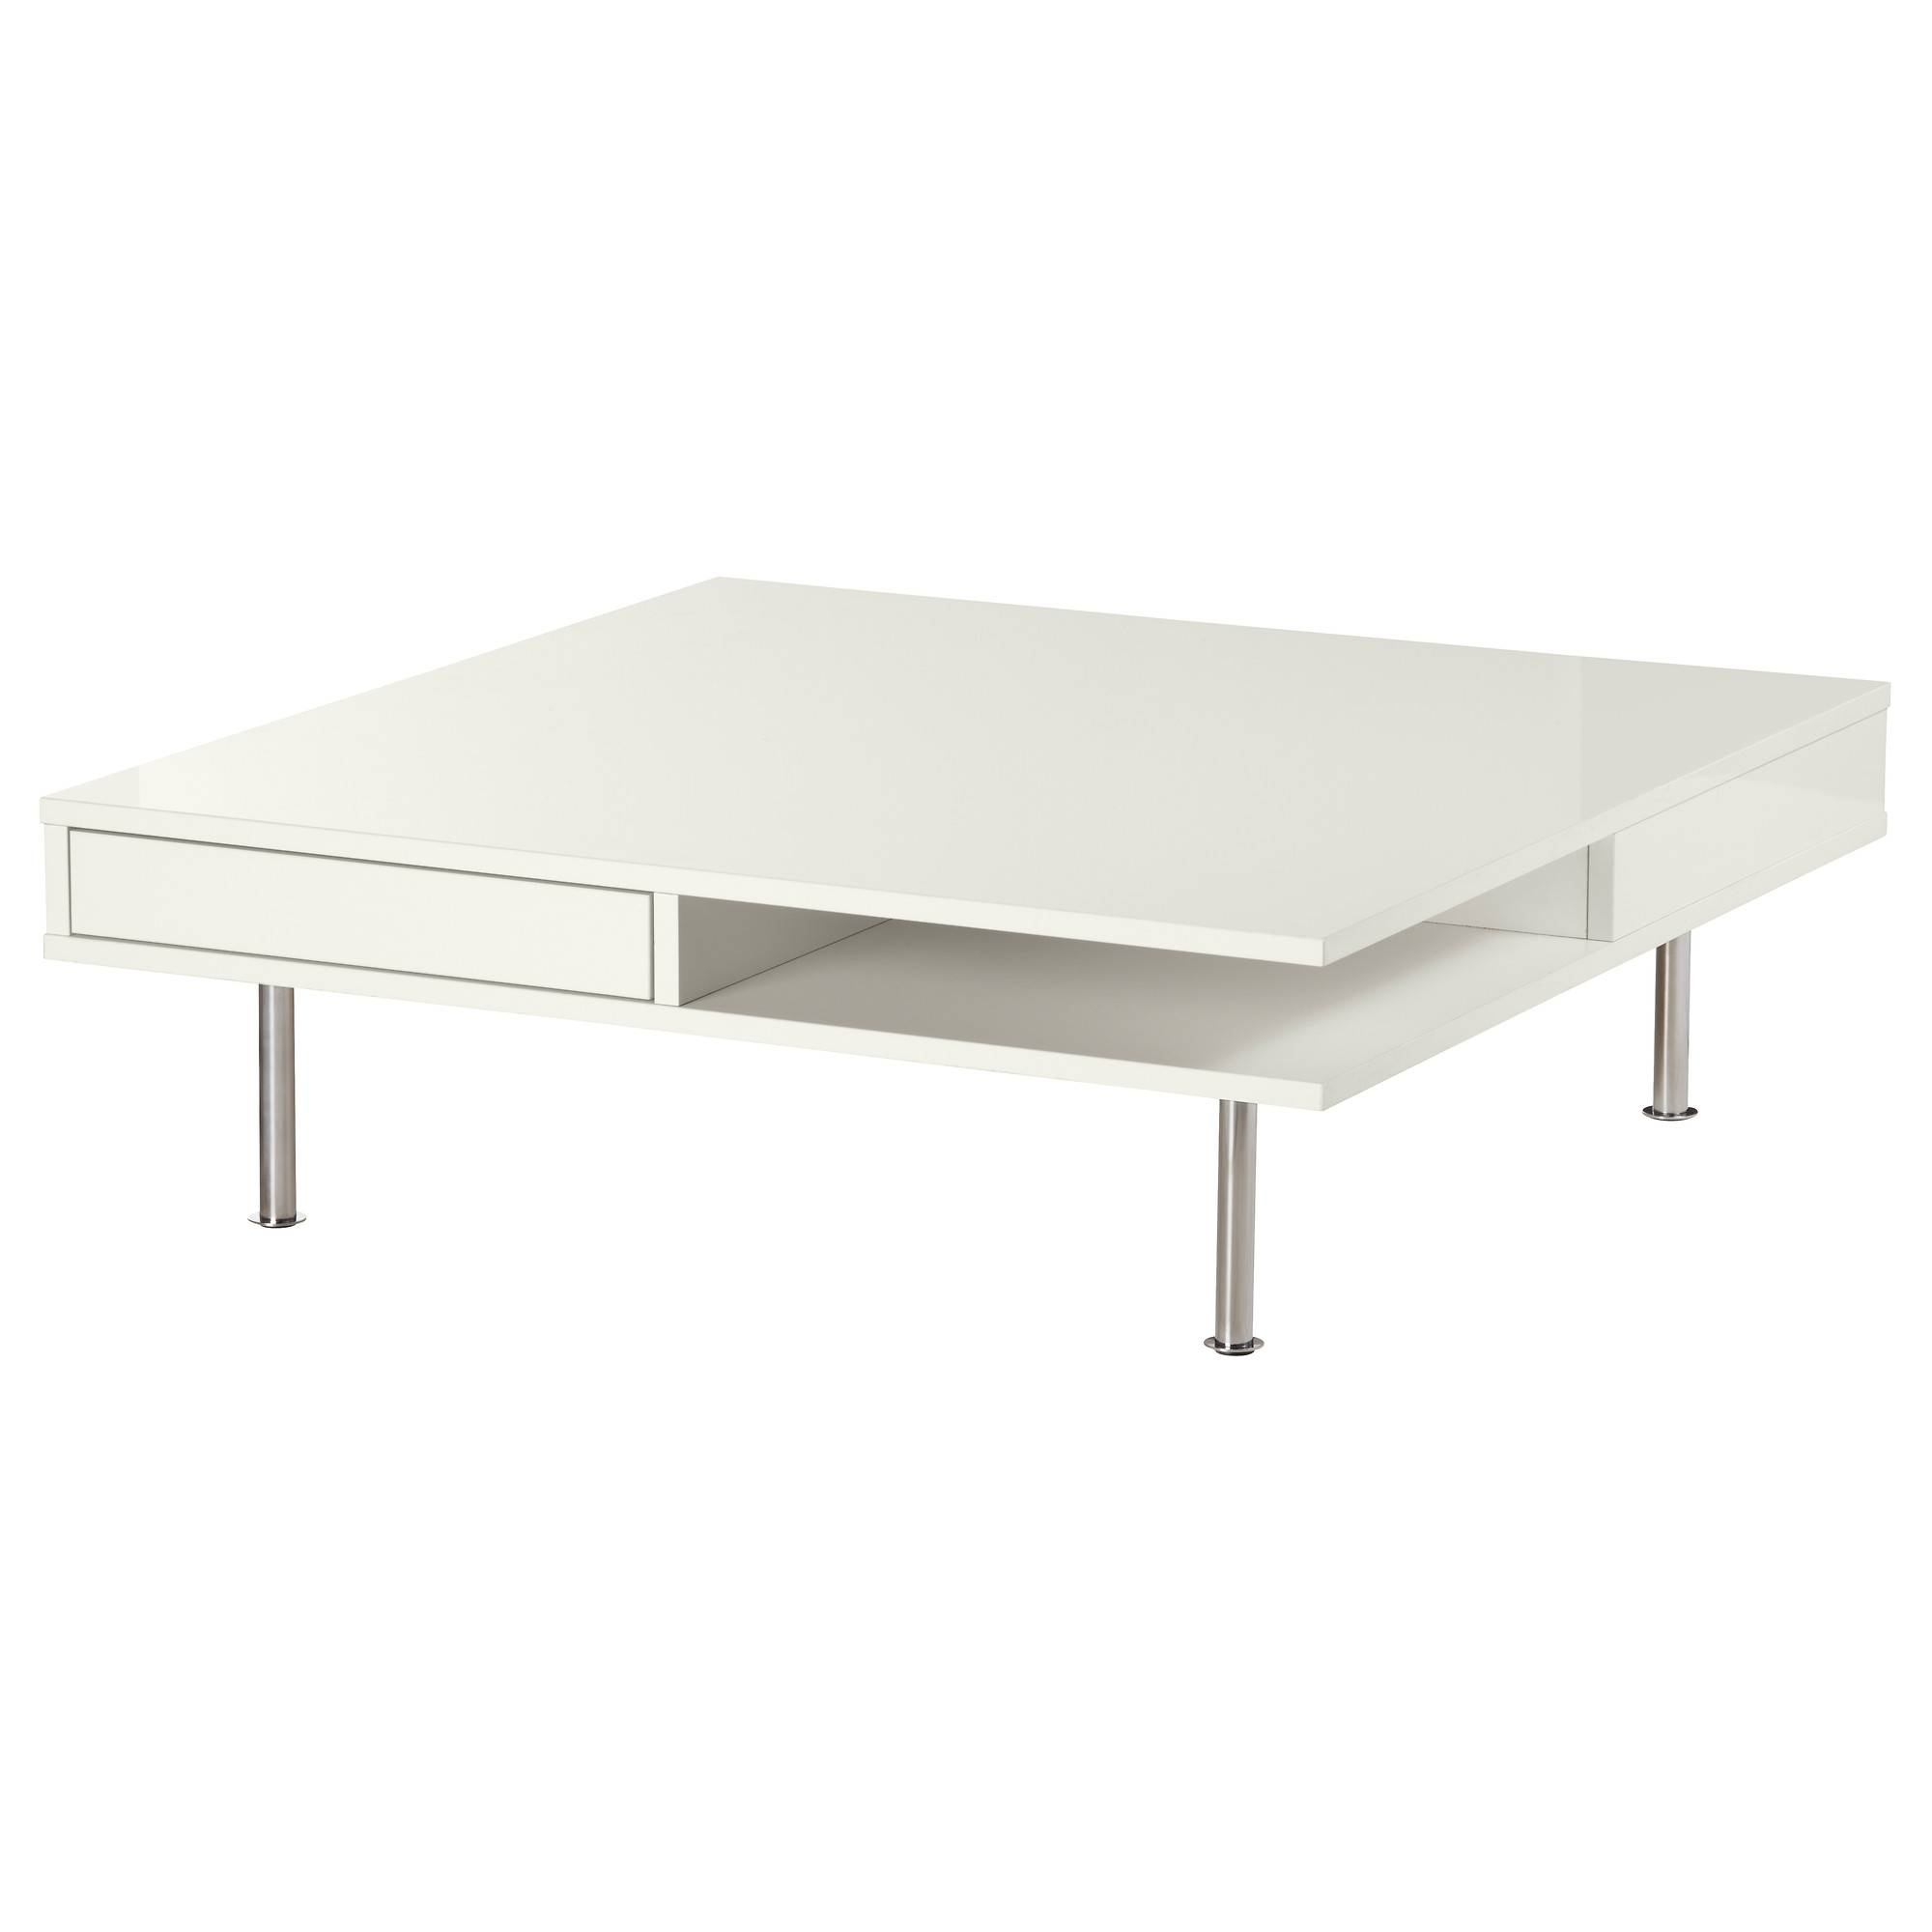 Tofteryd Coffee Table - High Gloss White - Ikea within White High Gloss Coffee Tables (Image 26 of 30)